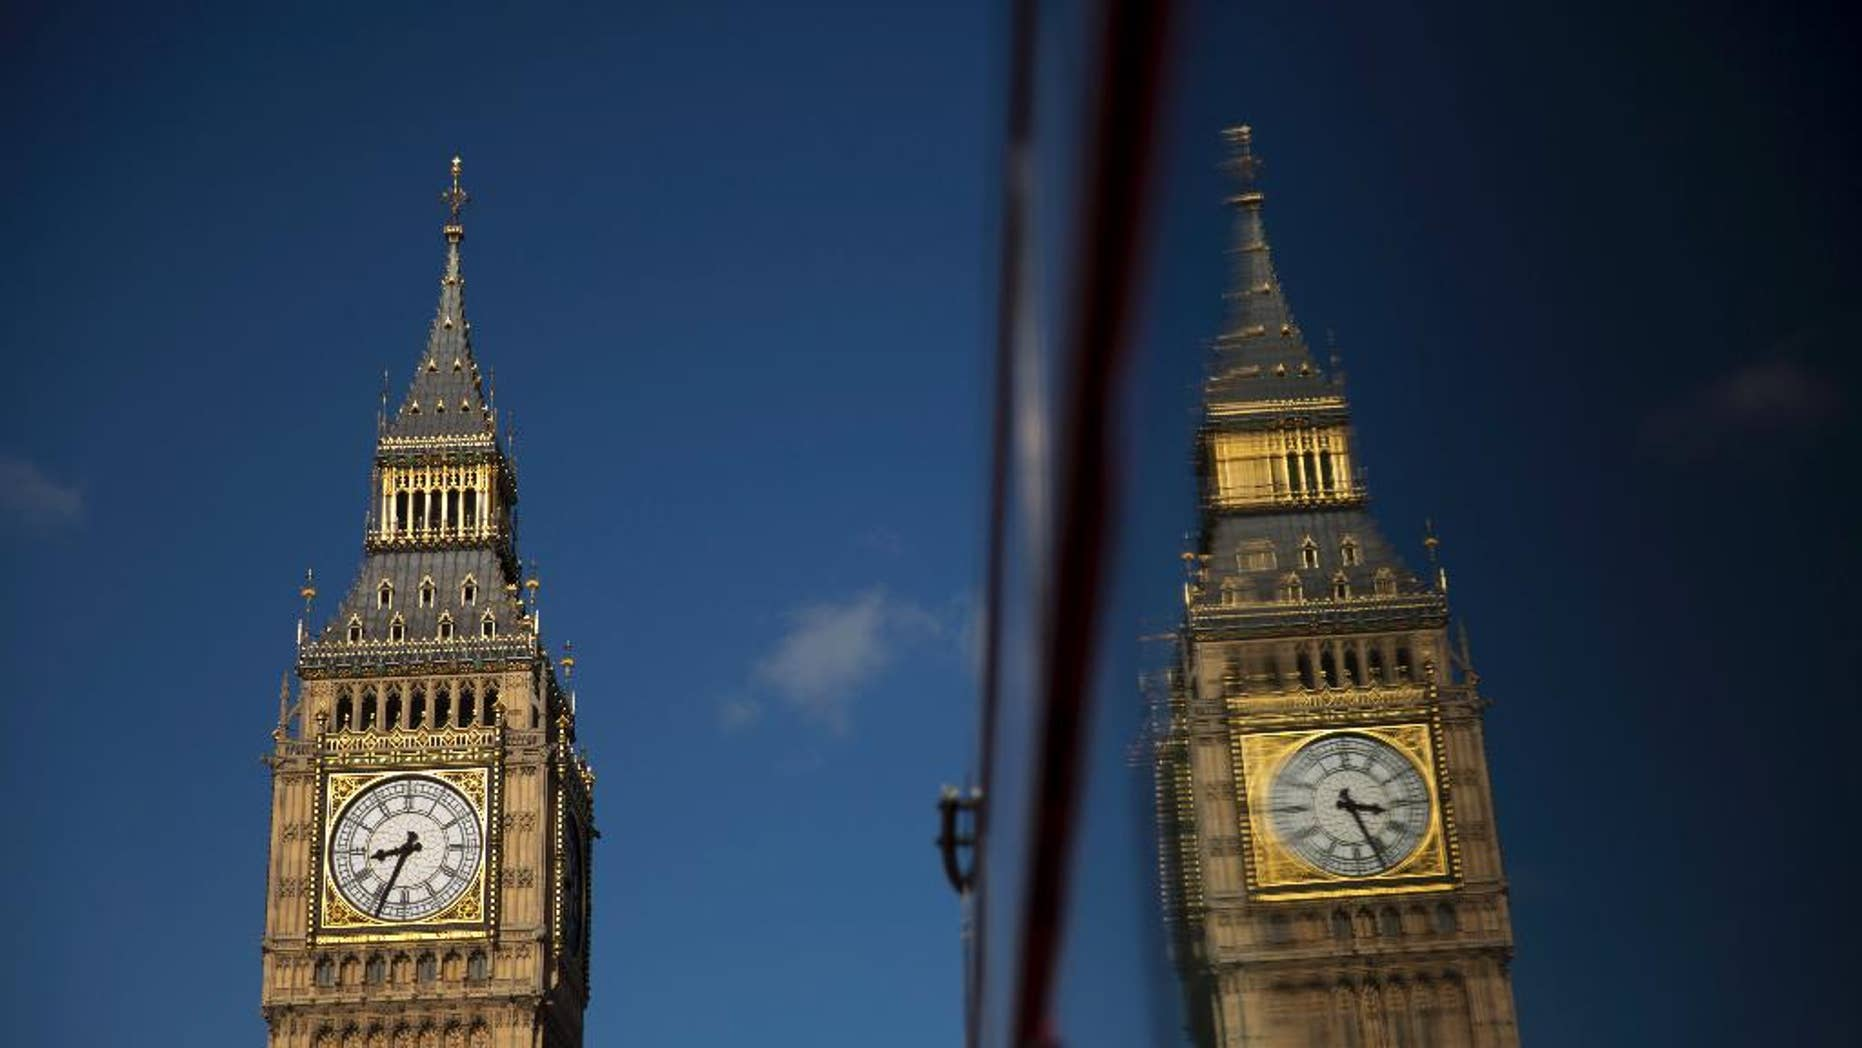 Elizabeth Tower, which houses the Big Ben bell, reflected in a bus window in London Tuesday.